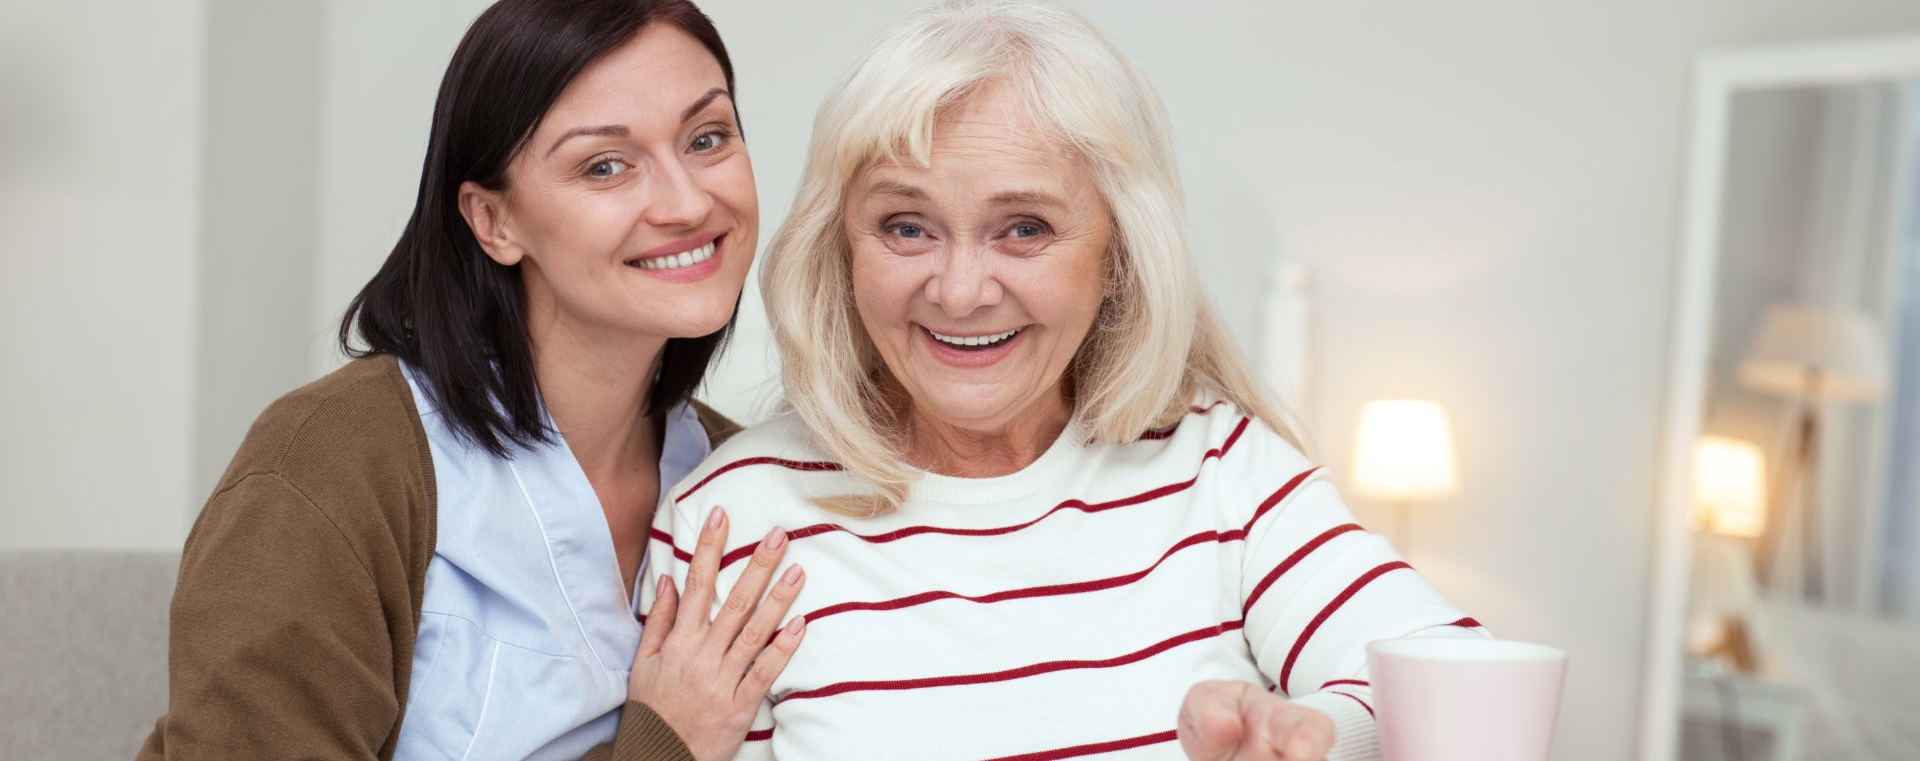 caregiver and her senior patient smiling